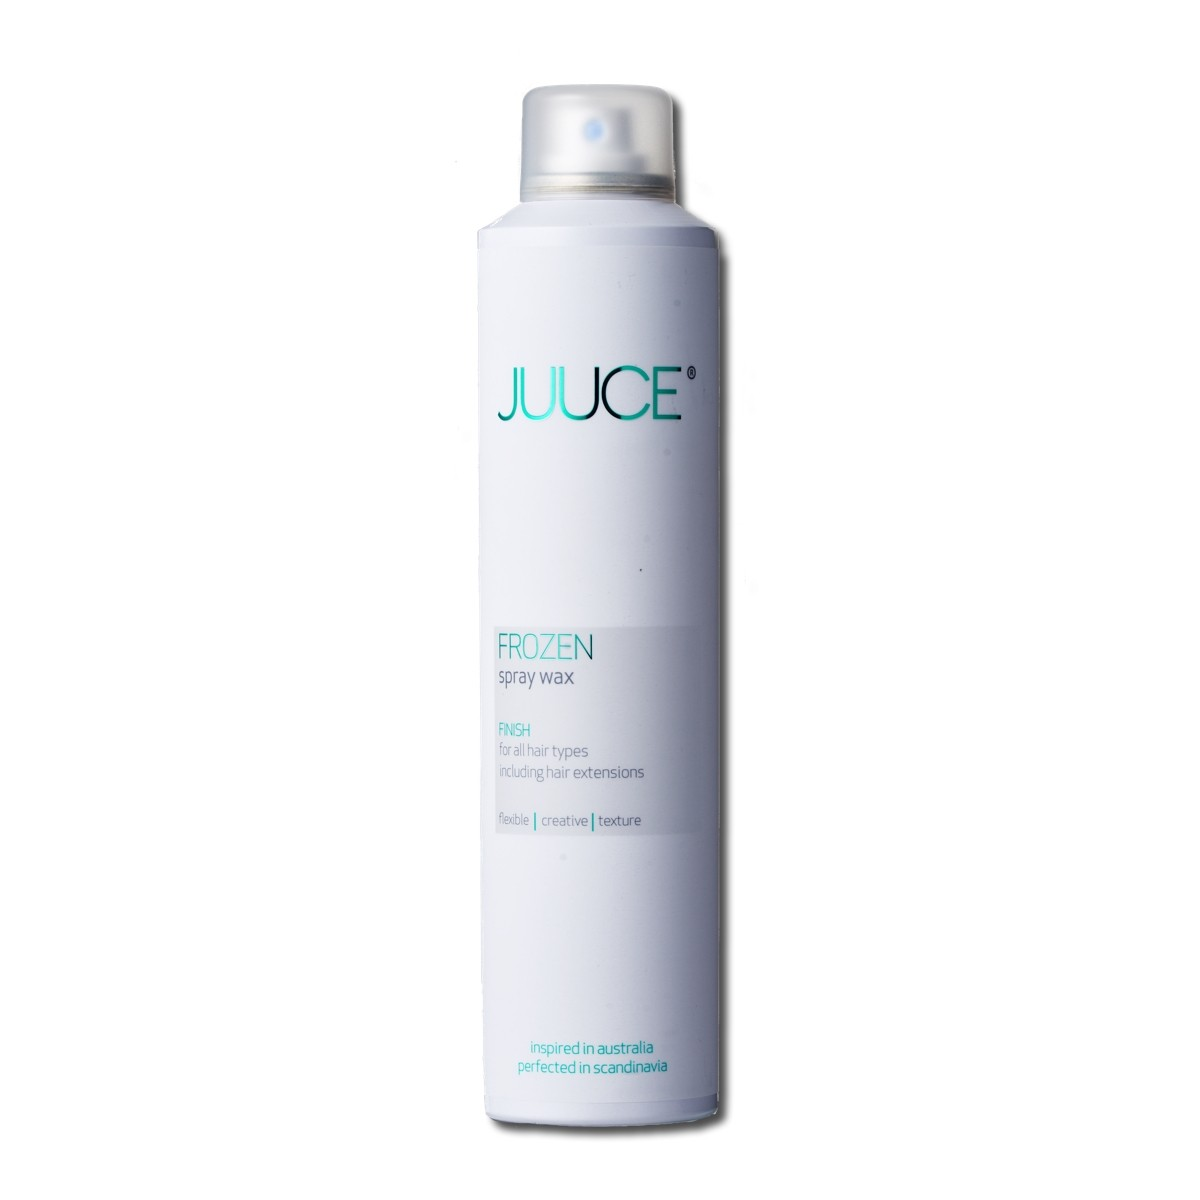 JUUCE Frozen Spray Wax 300 ml-34